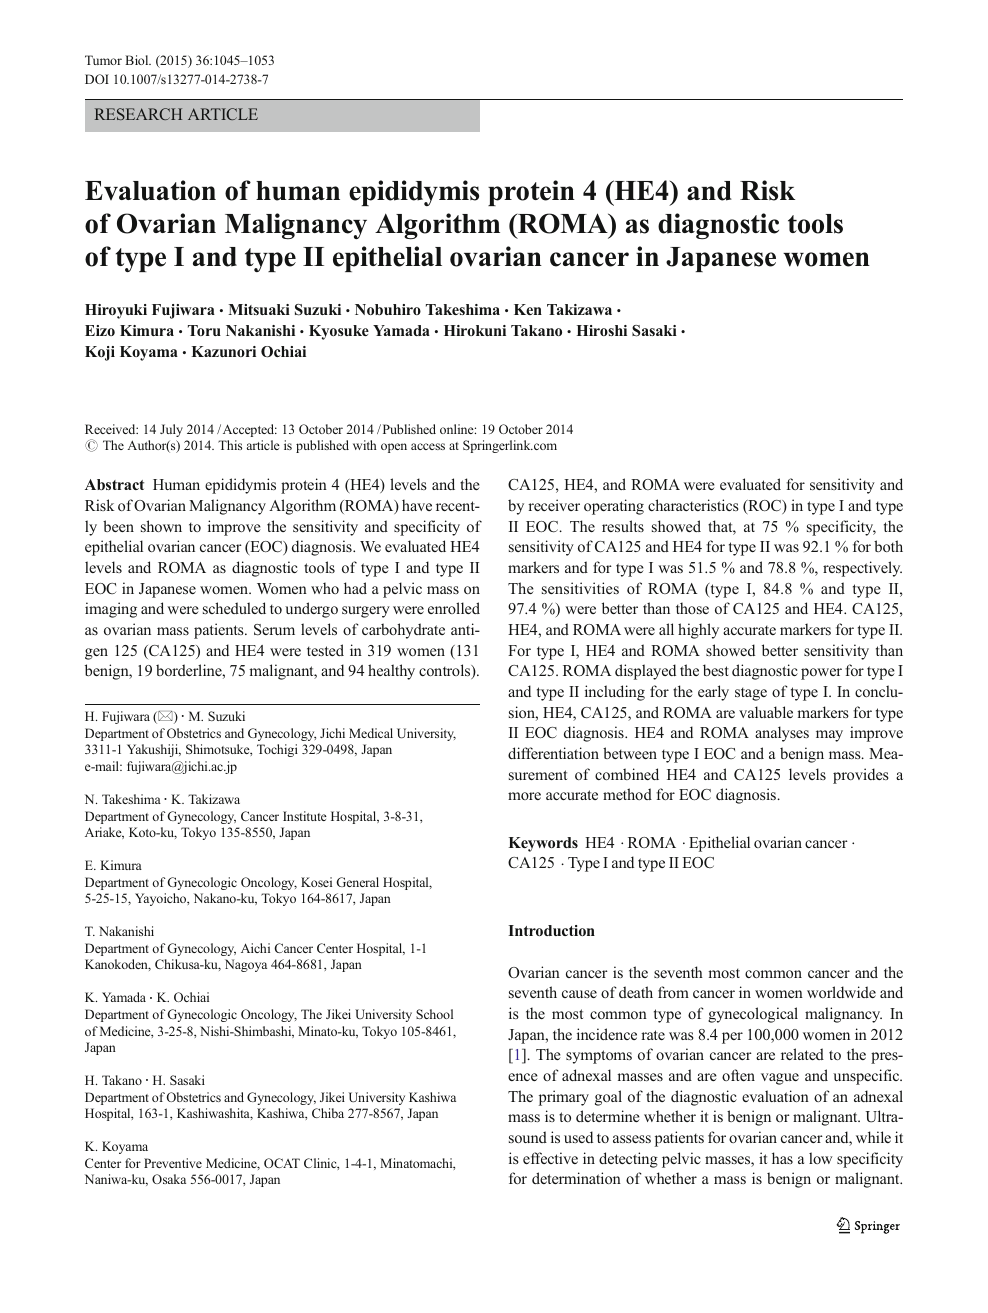 Evaluation Of Human Epididymis Protein 4 He4 And Risk Of Ovarian Malignancy Algorithm Roma As Diagnostic Tools Of Type I And Type Ii Epithelial Ovarian Cancer In Japanese Women Topic Of